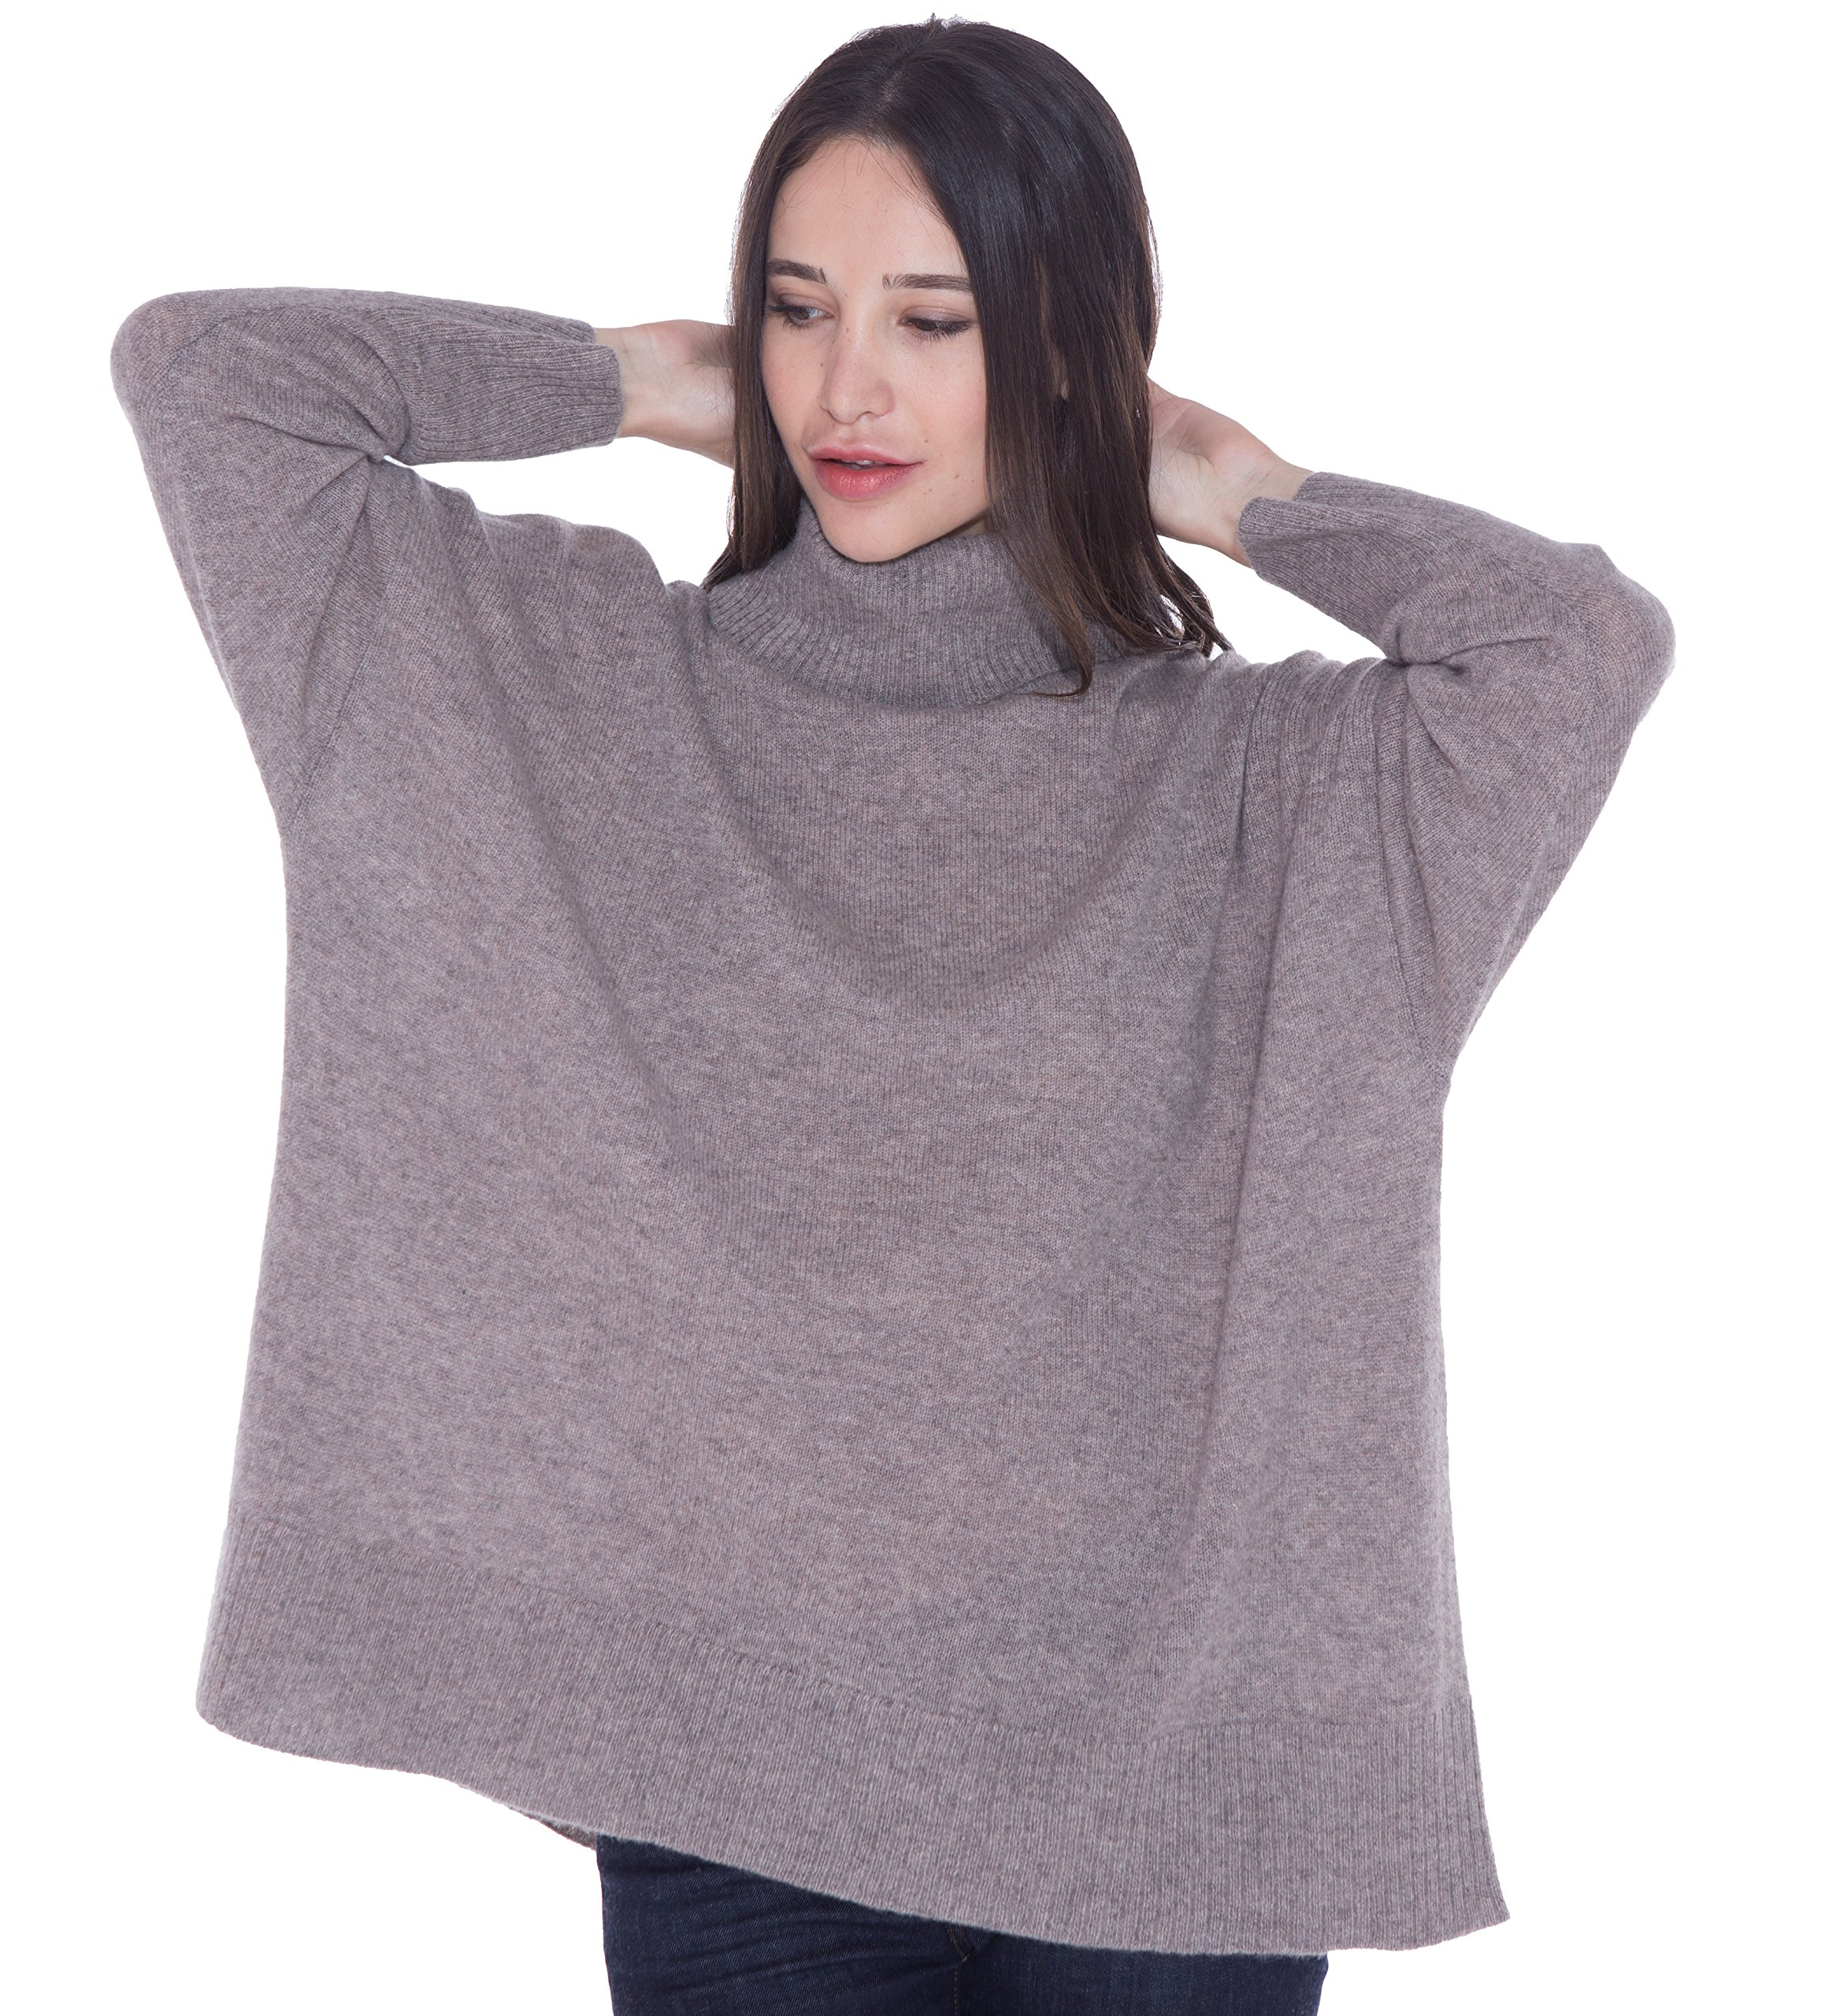 cashmere 4 U 100% Cashmere Turtleneck Oversize Sweater Pullover For Women by cashmere 4 U (Image #1)